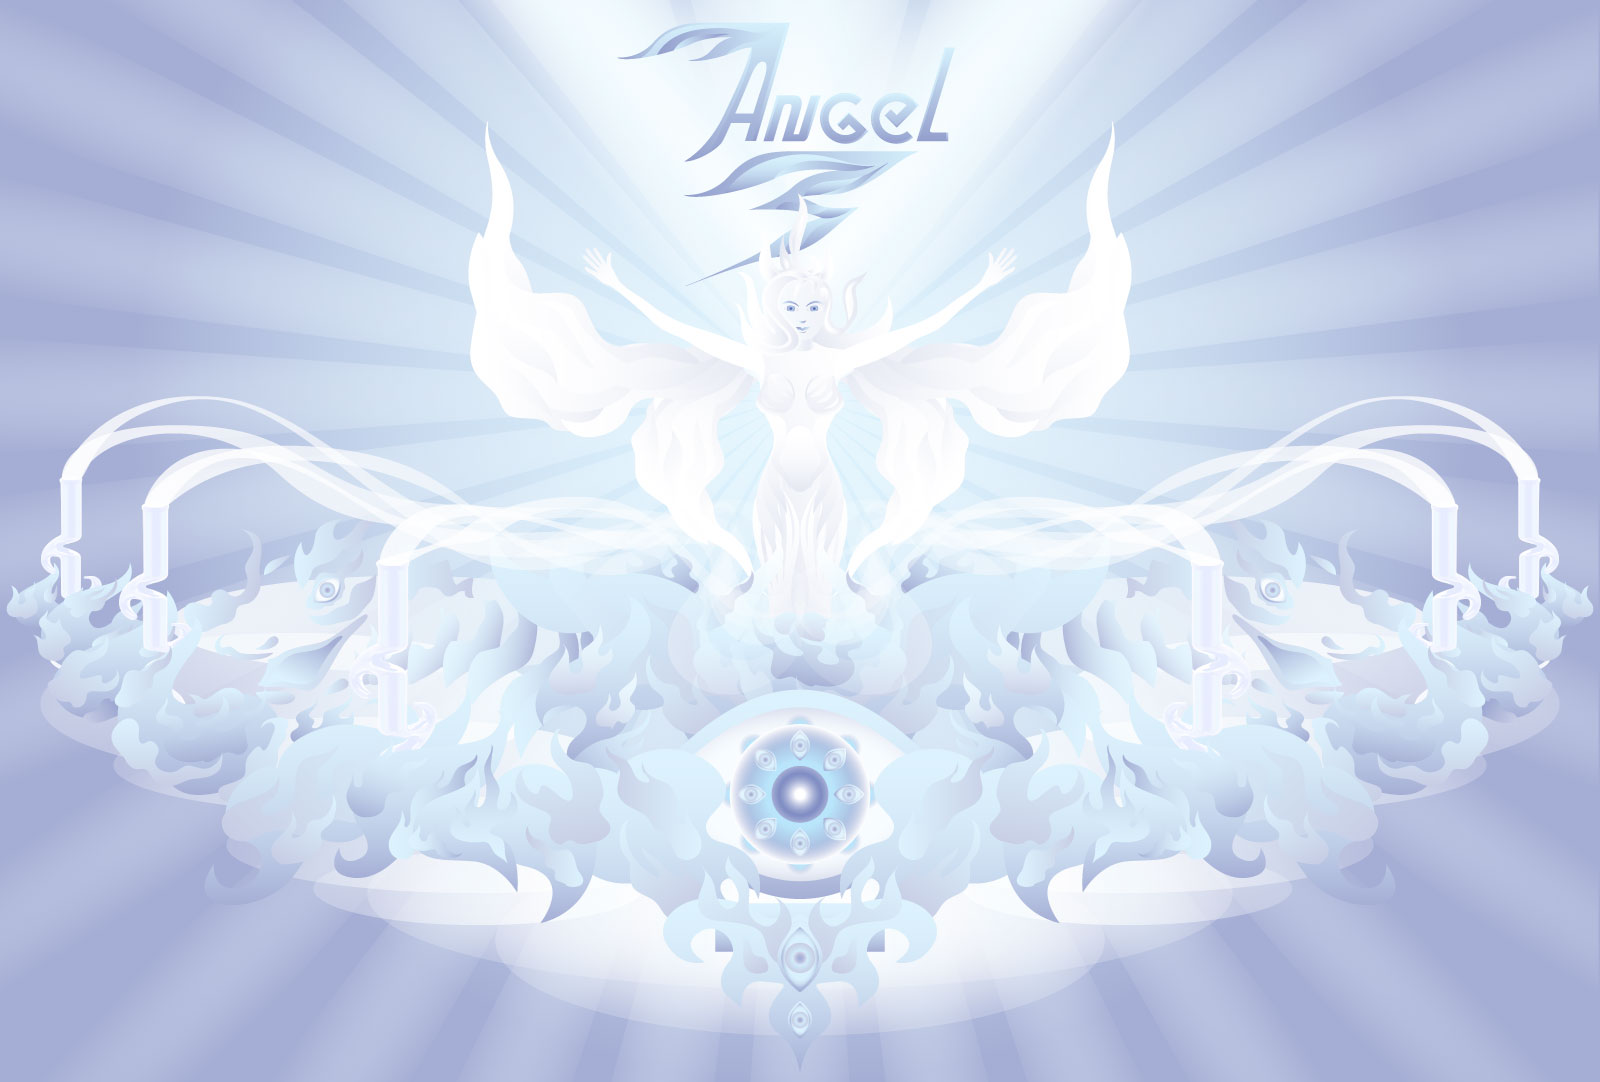 Angel zong splash page and logo